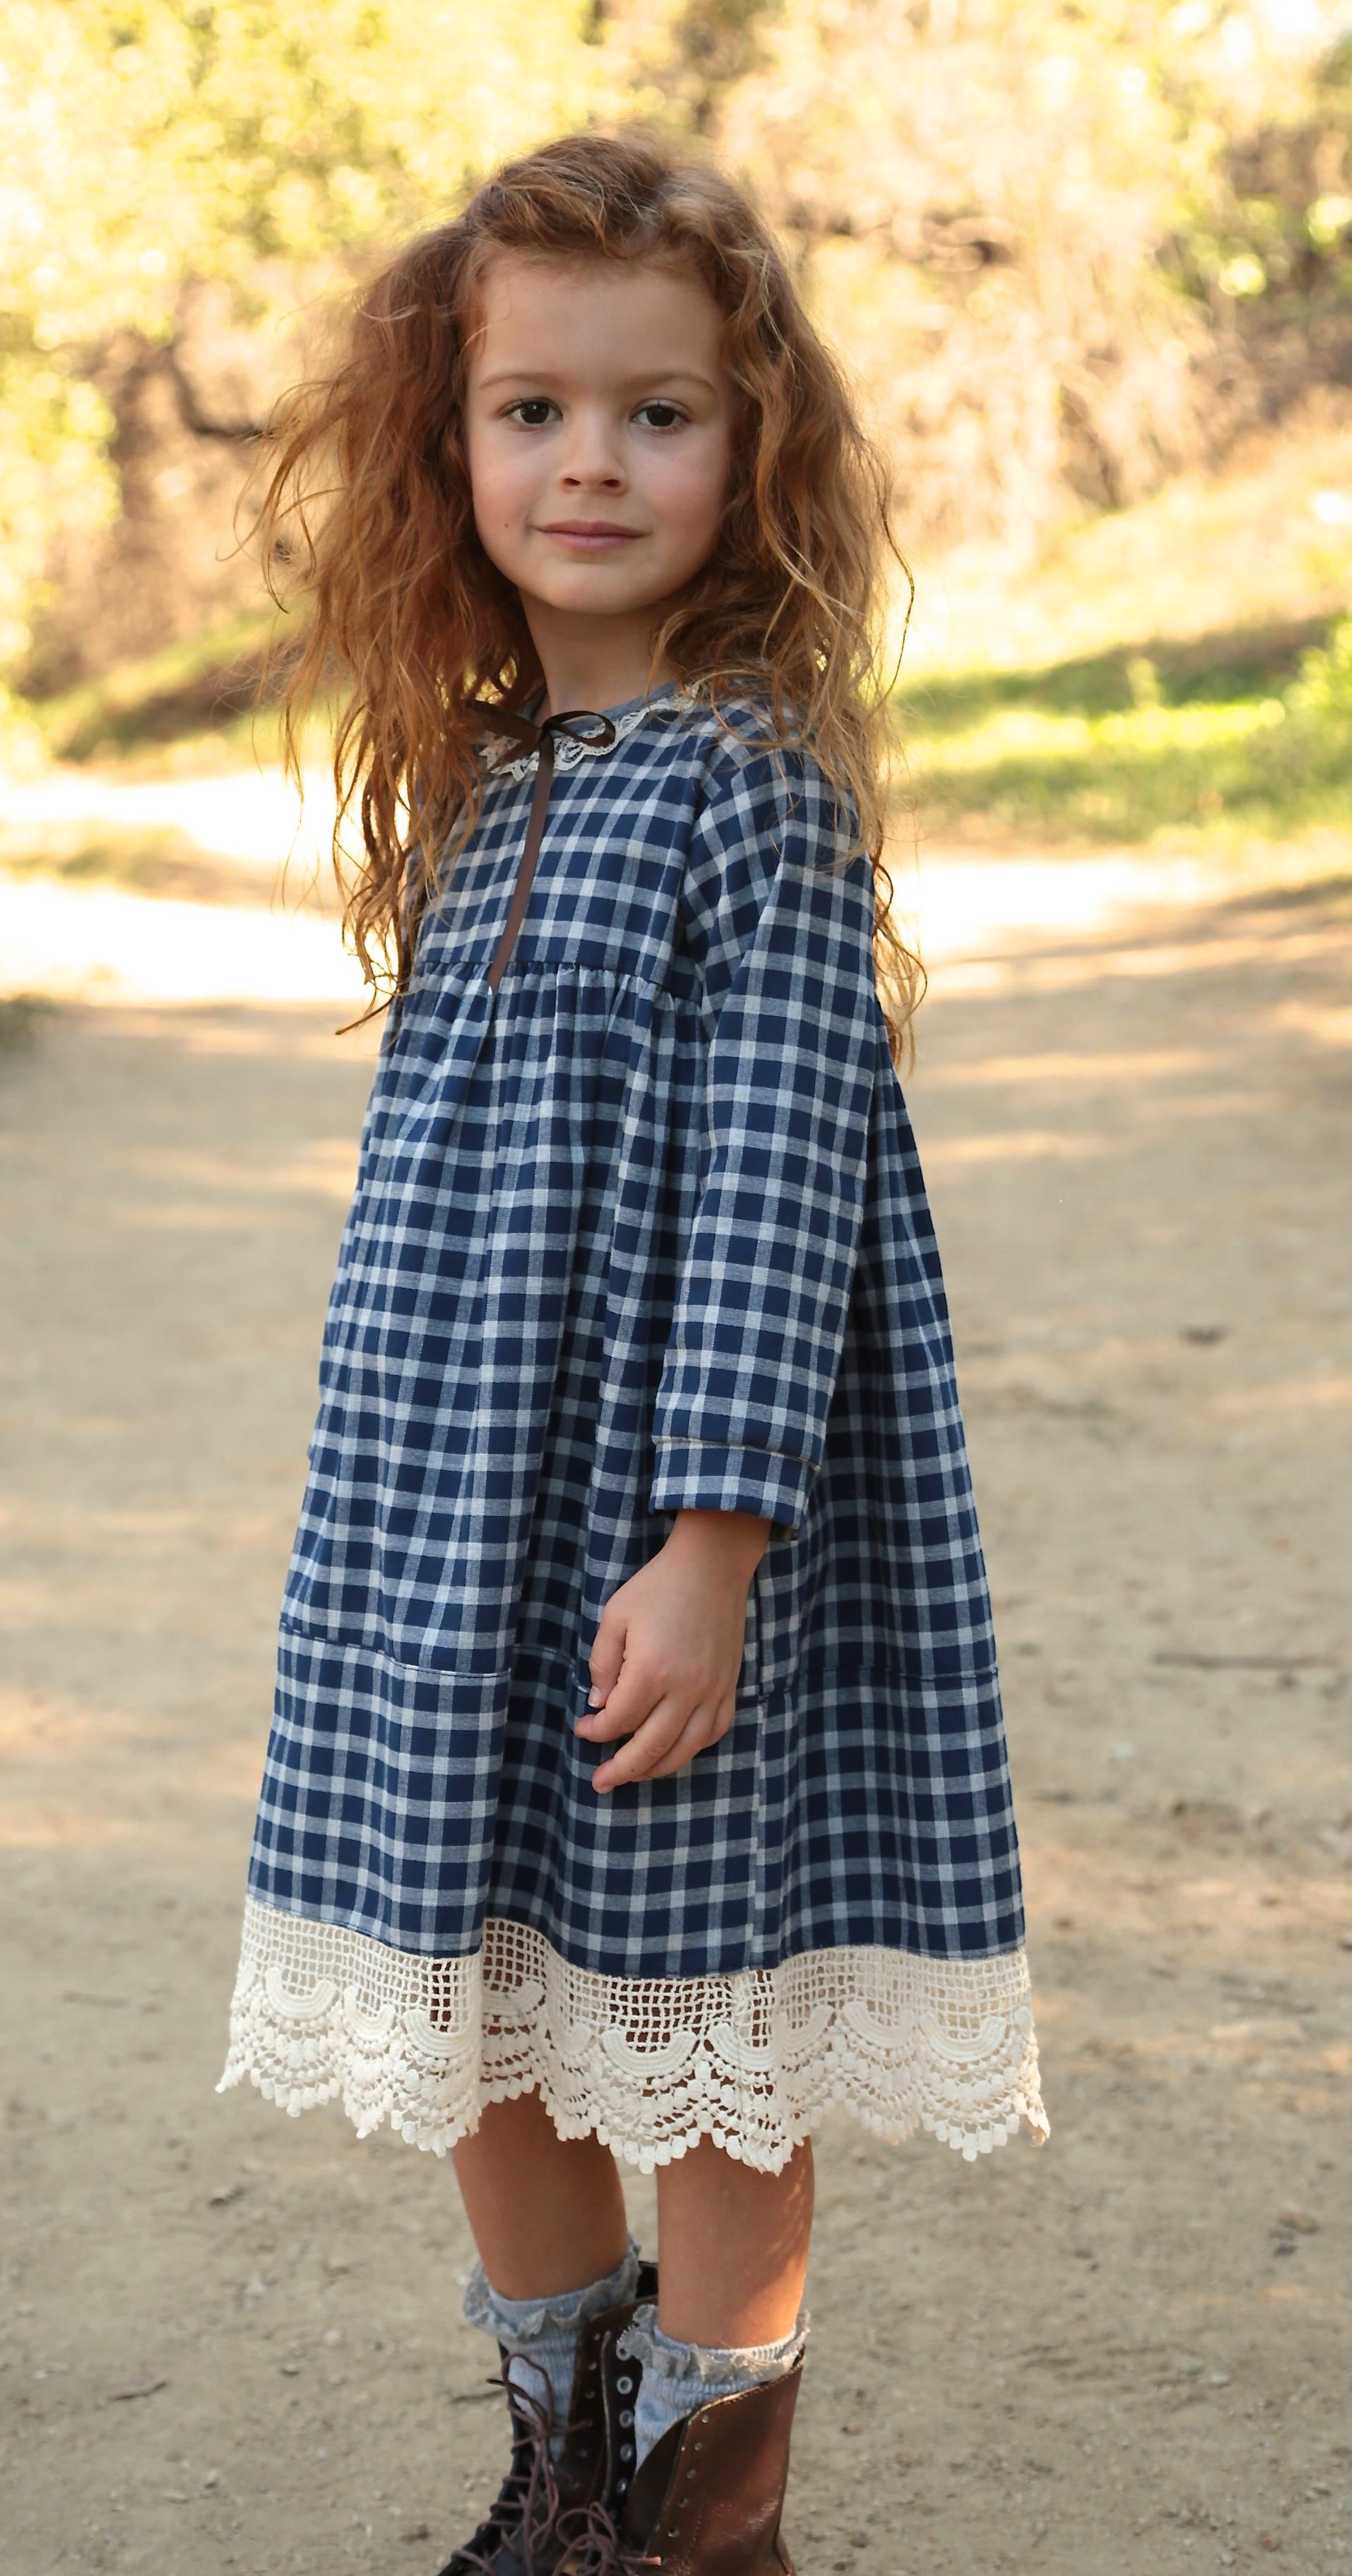 Winter dress | Kids - Pretty Little Dresses | Pinterest ...